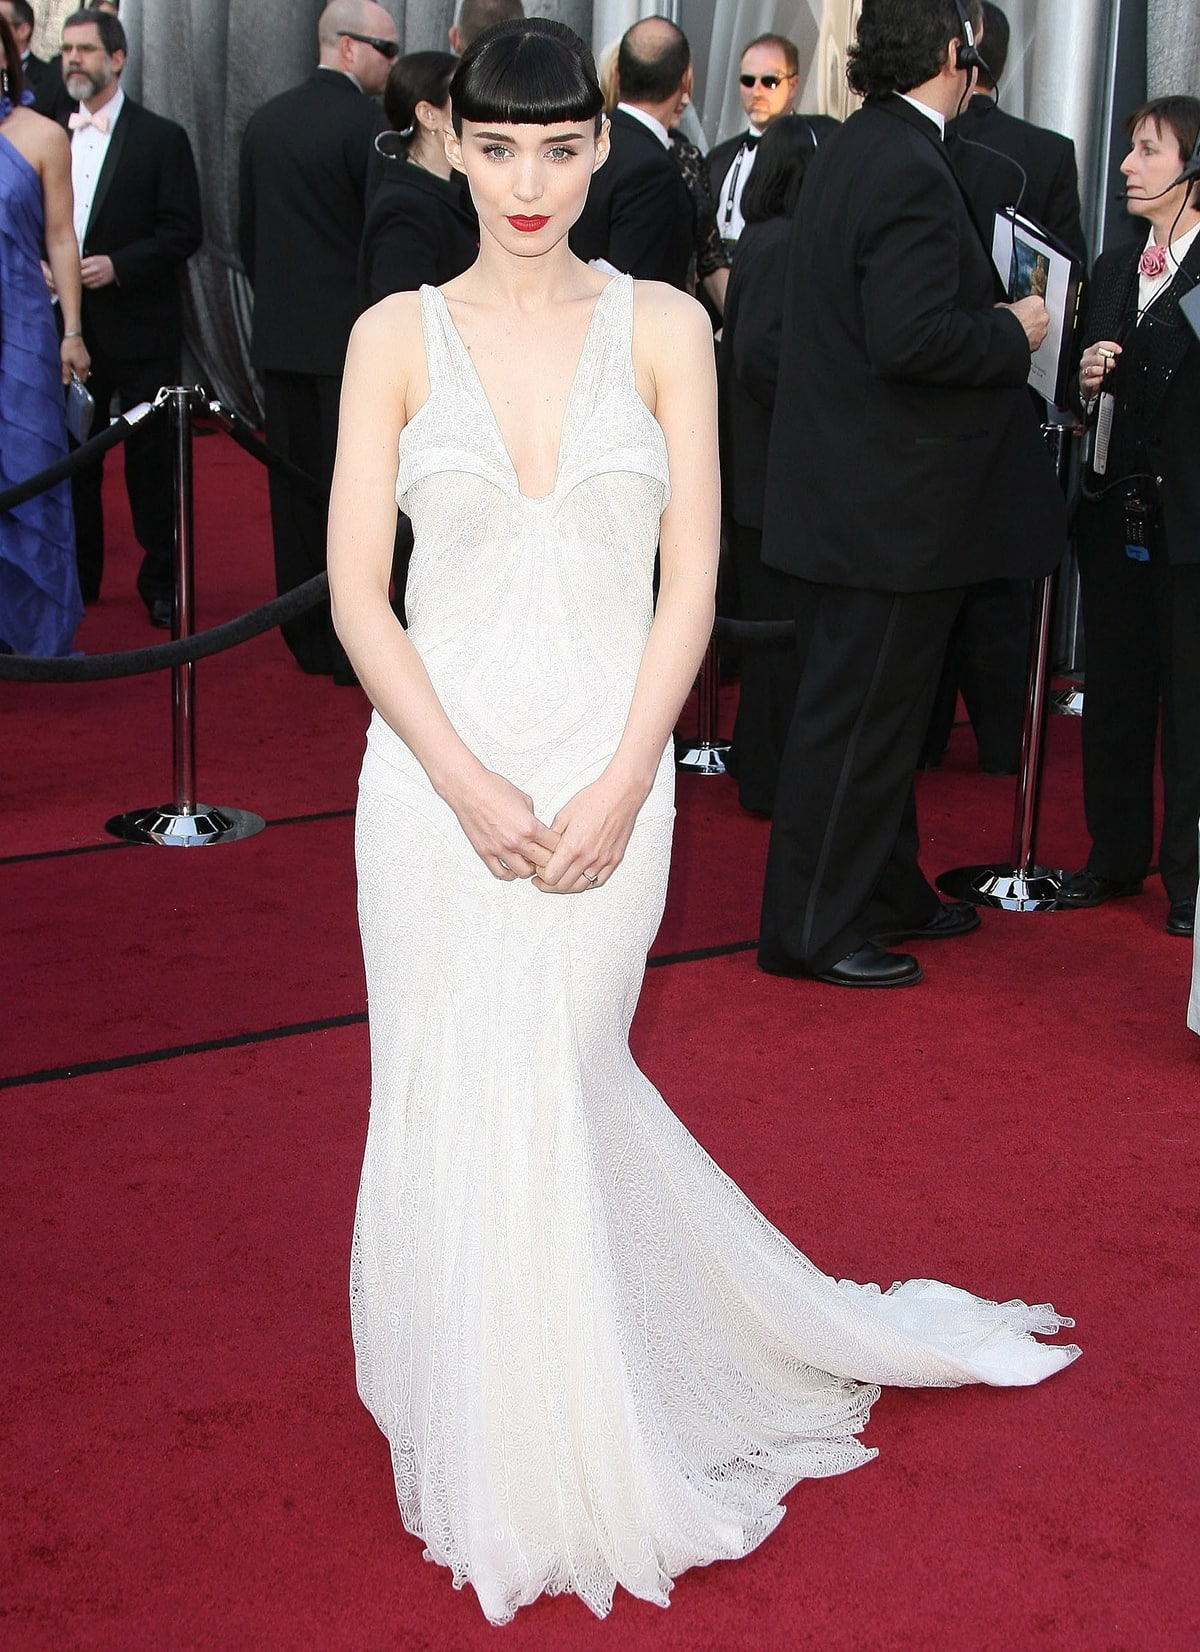 Rooney Mara in Givenchy Couture at the 2012 Oscars